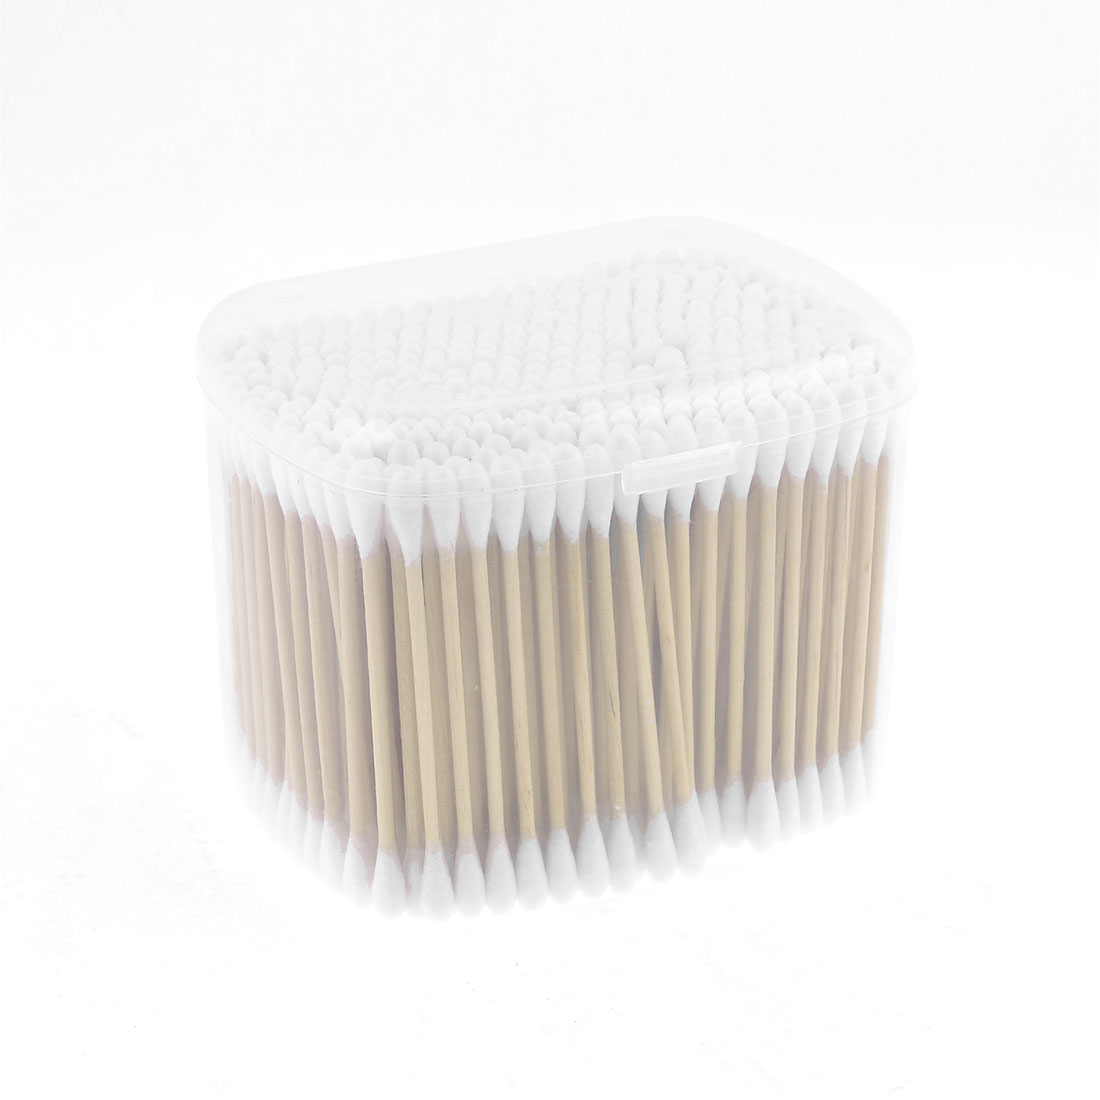 Cosmetic Disposable Double End Cotton Swab Bud Rod White 350pcs w Plastic Case